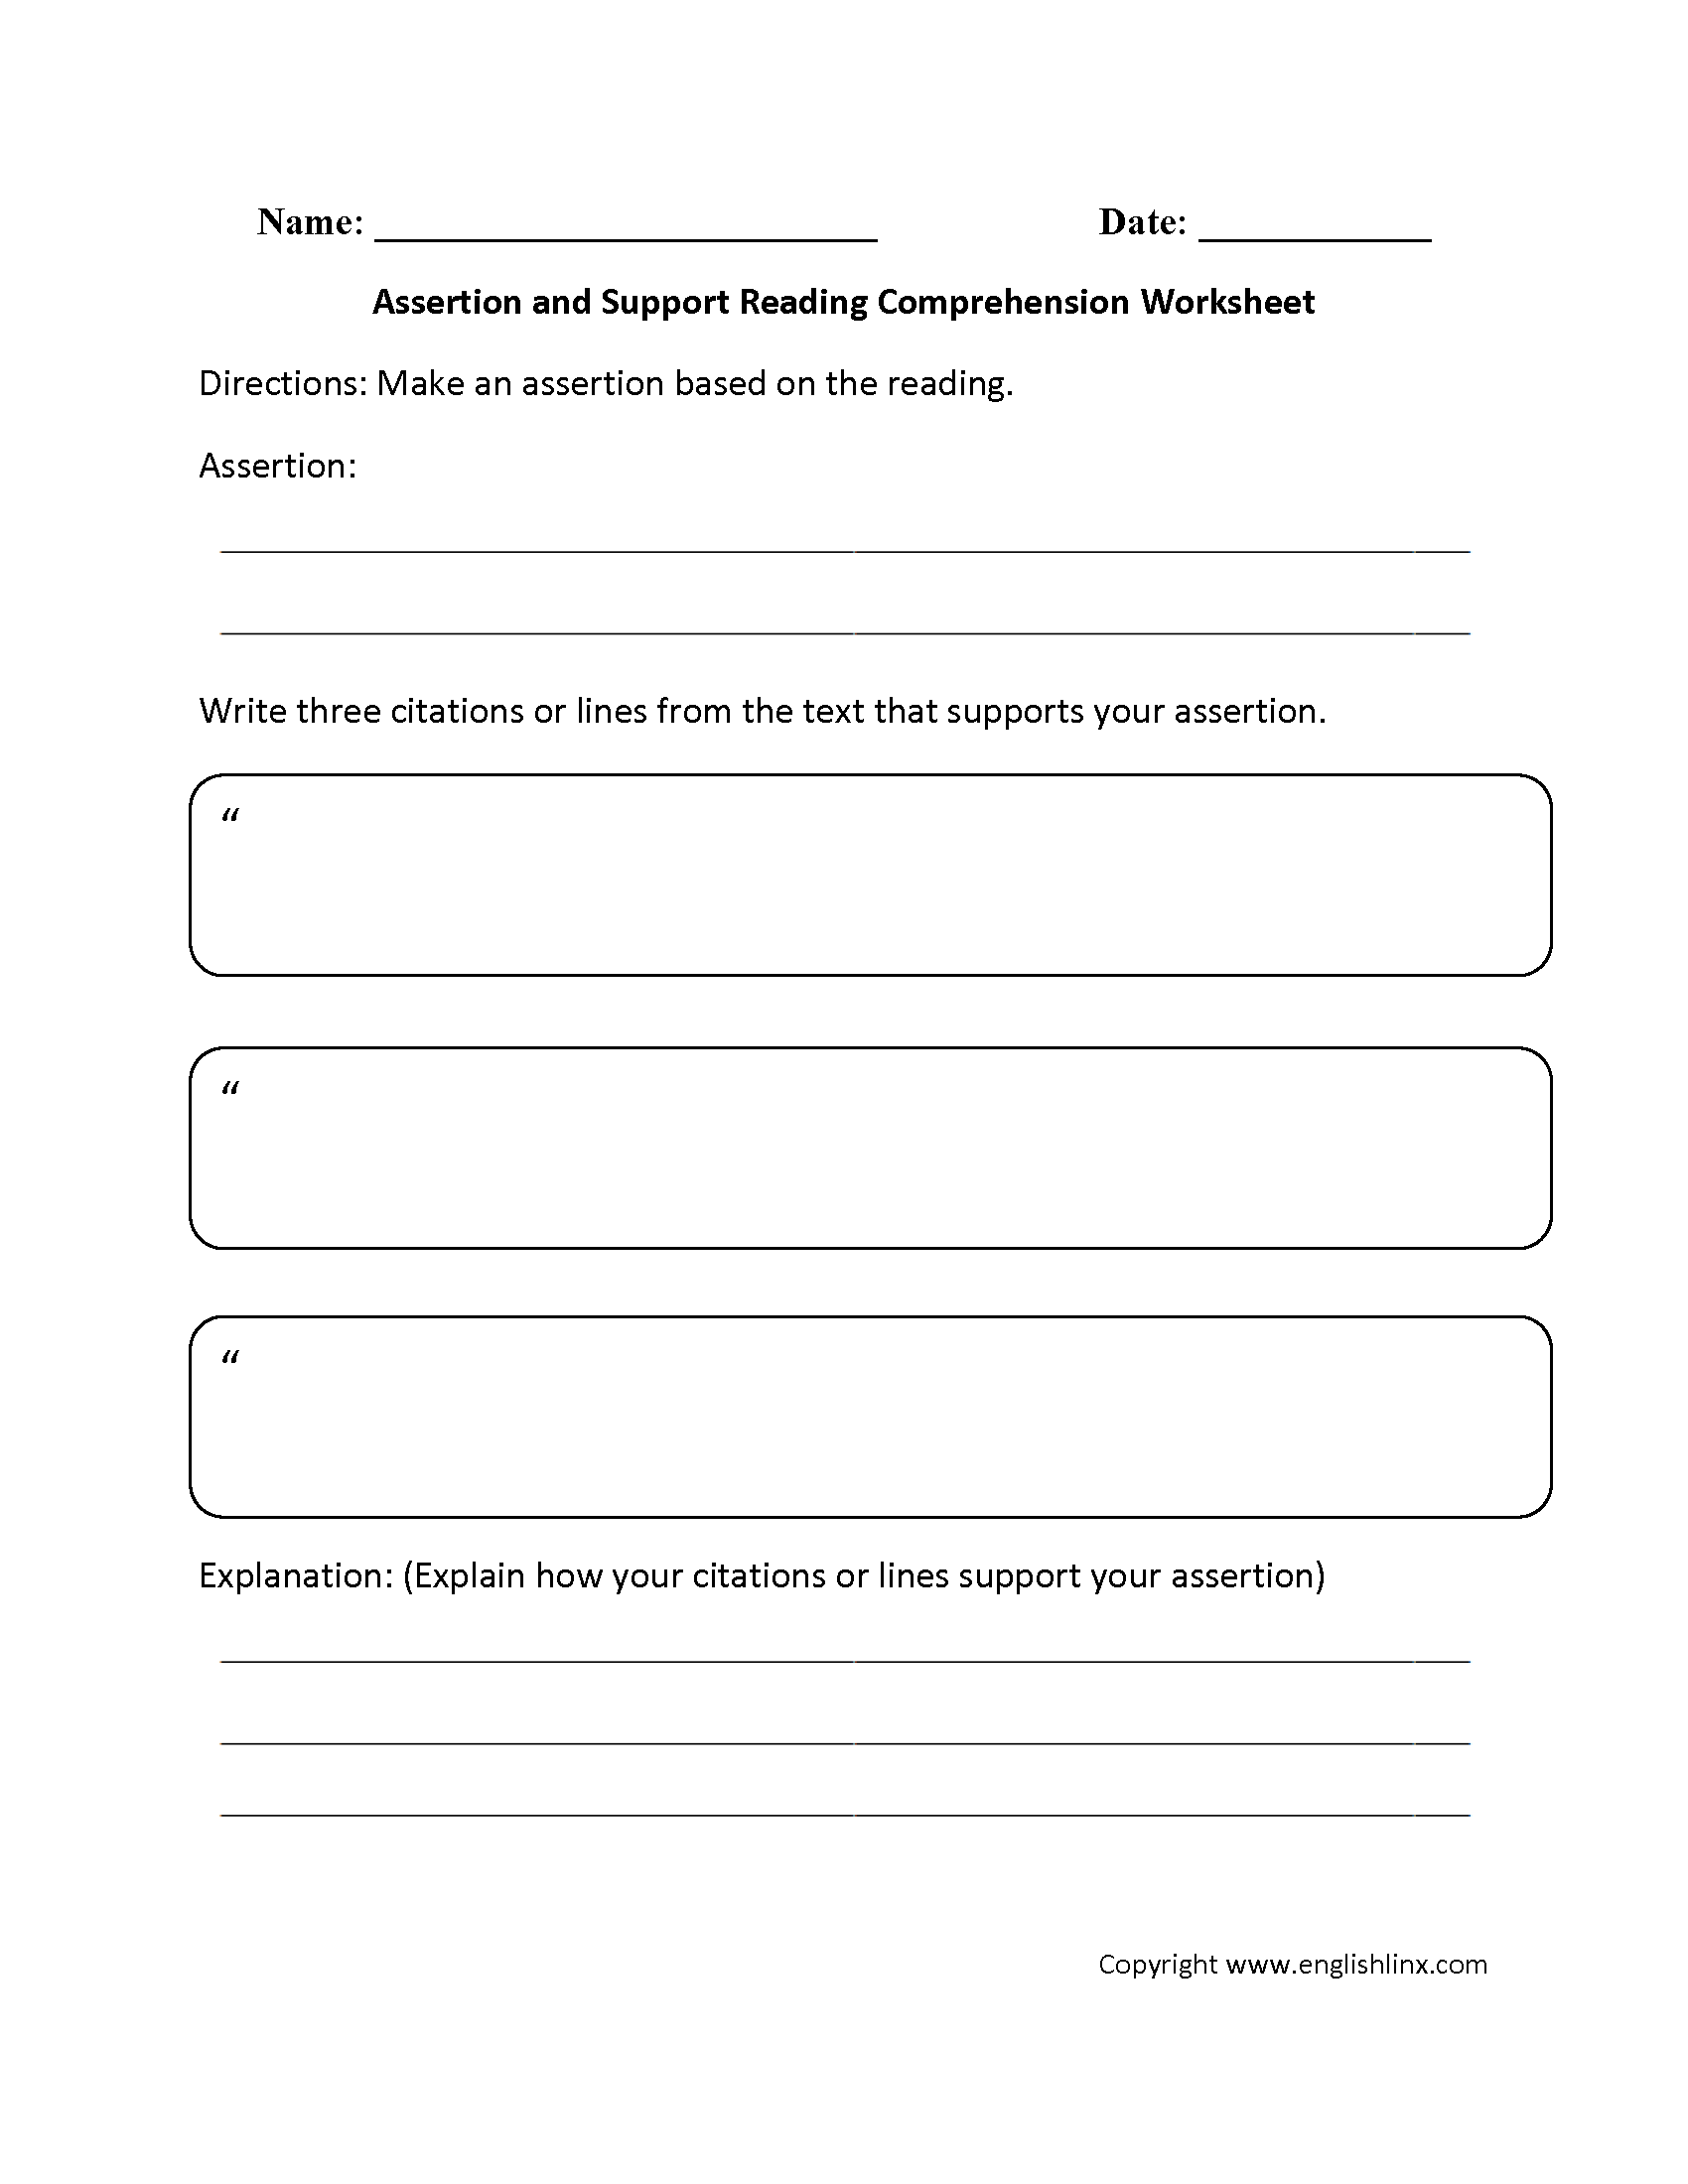 Assertion And Support Reading Comprehension Worksheet